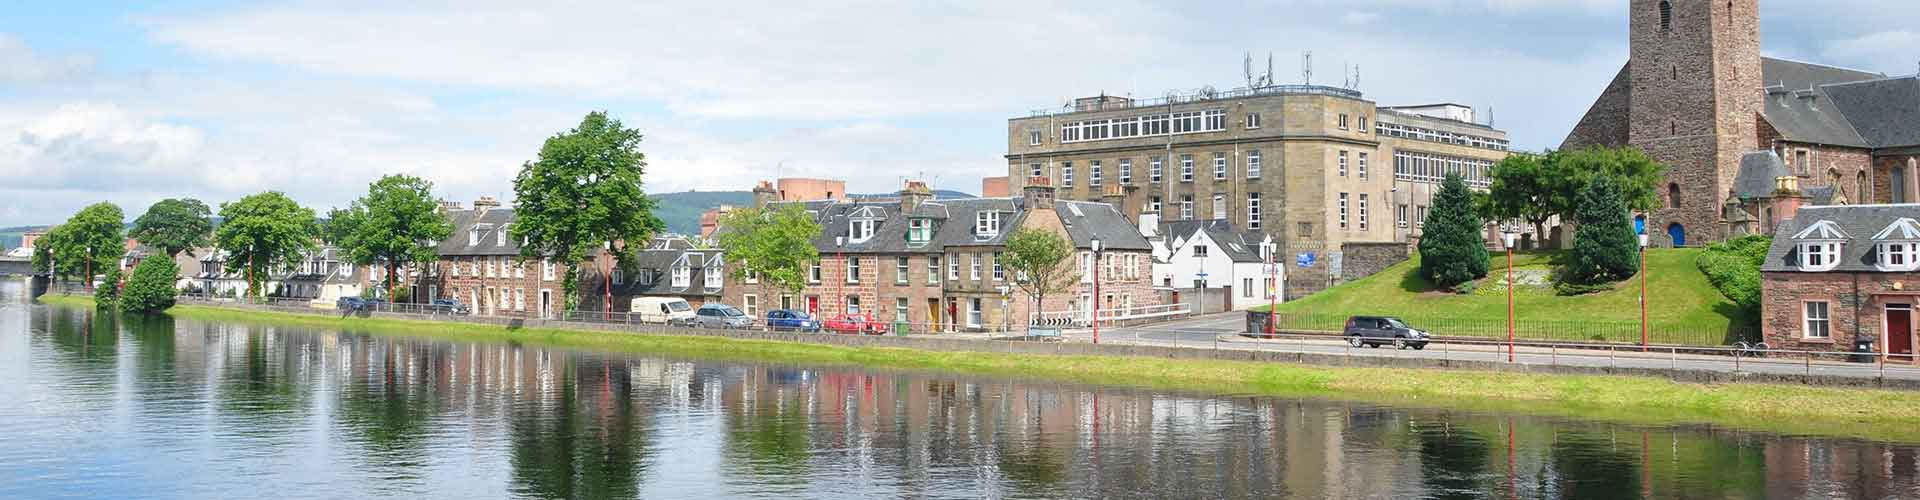 Inverness – Ostelli a Inverness. Mappe per Inverness, Foto e  Recensioni per ogni Ostello a Inverness.